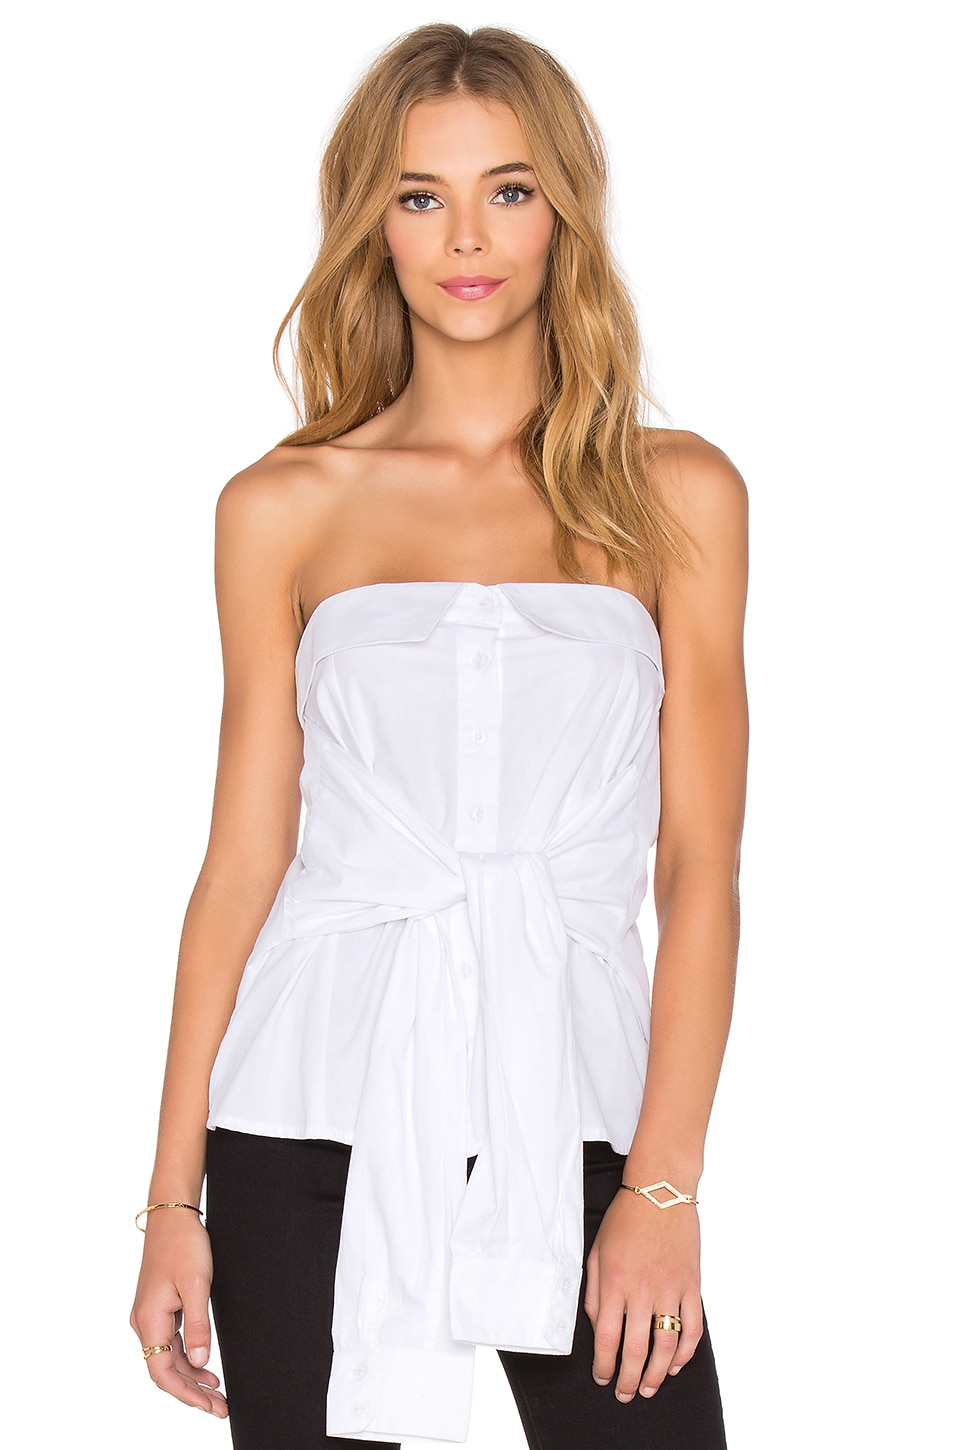 MLM Label Bustier Strapless Top in White